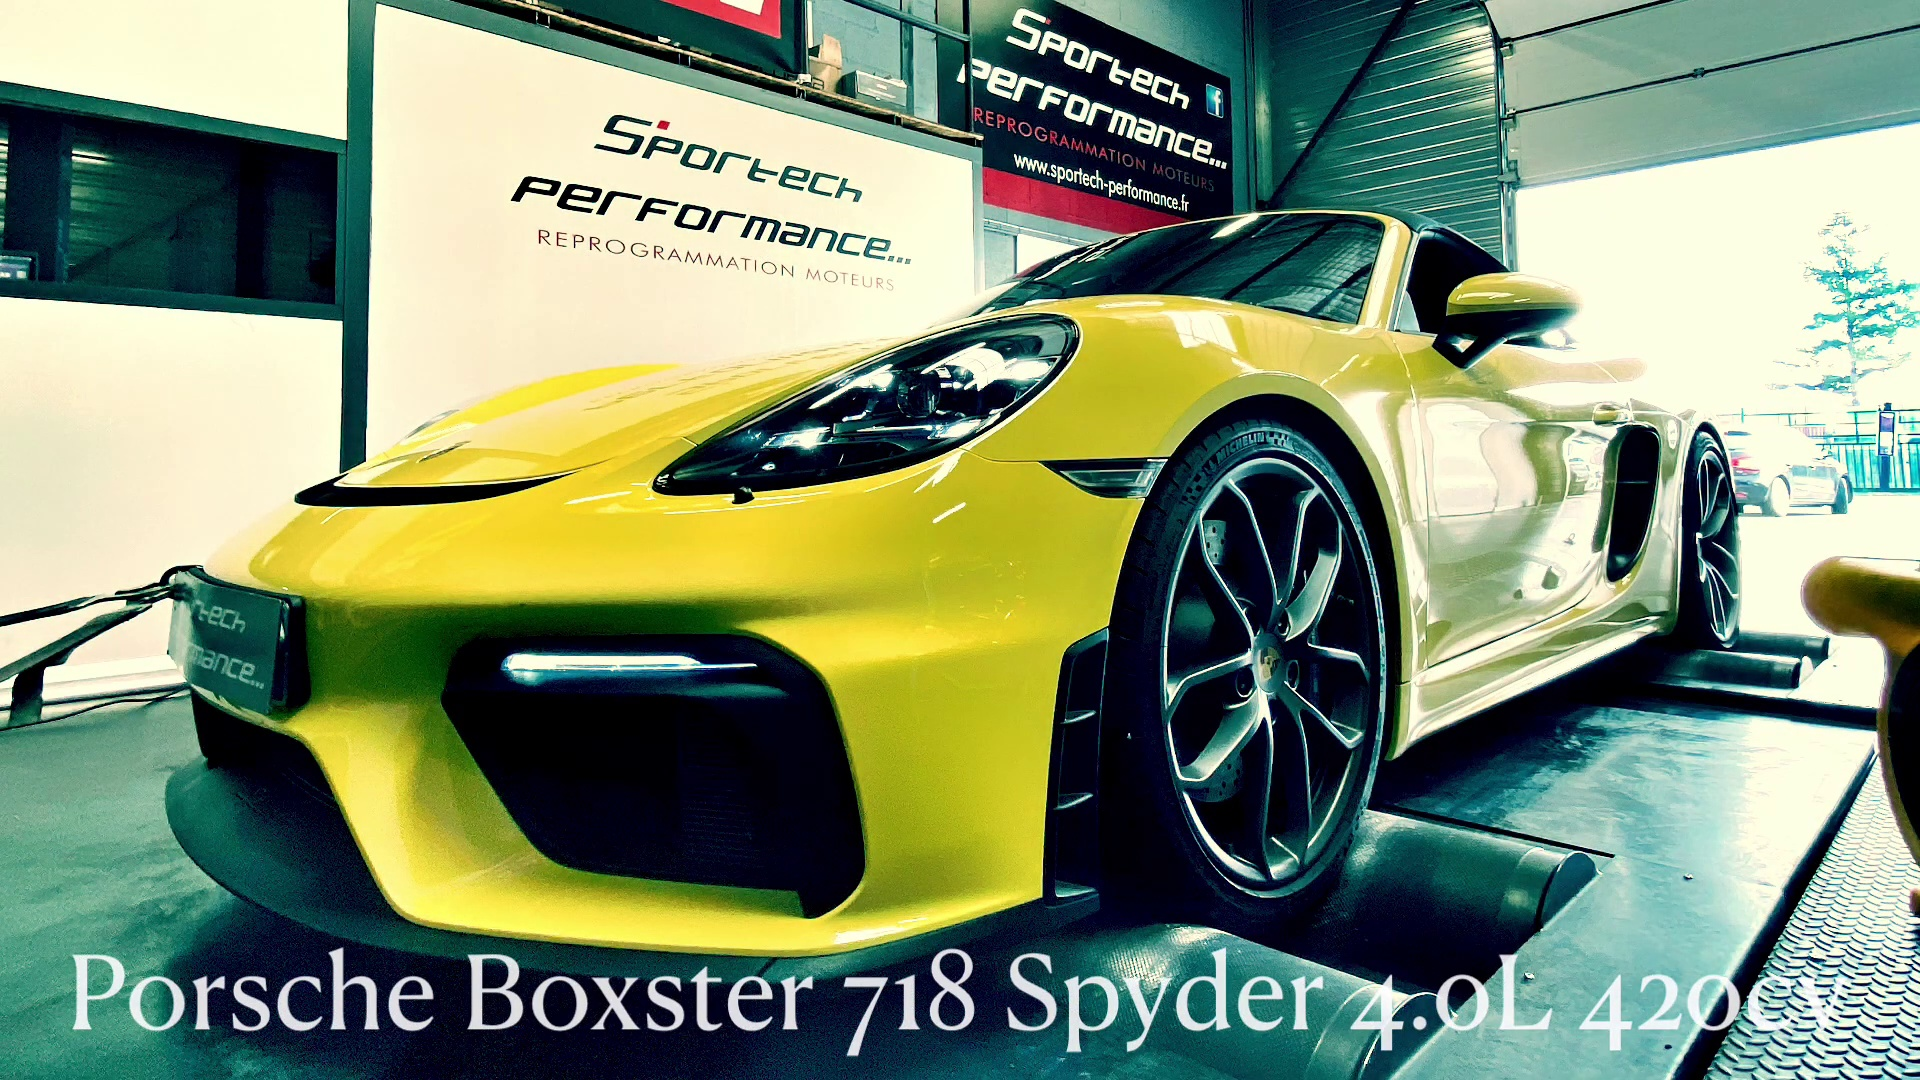 SUPERSPRINT exhaust with valves on Porsche Boxster 718 Spyder 4.0L 420cv